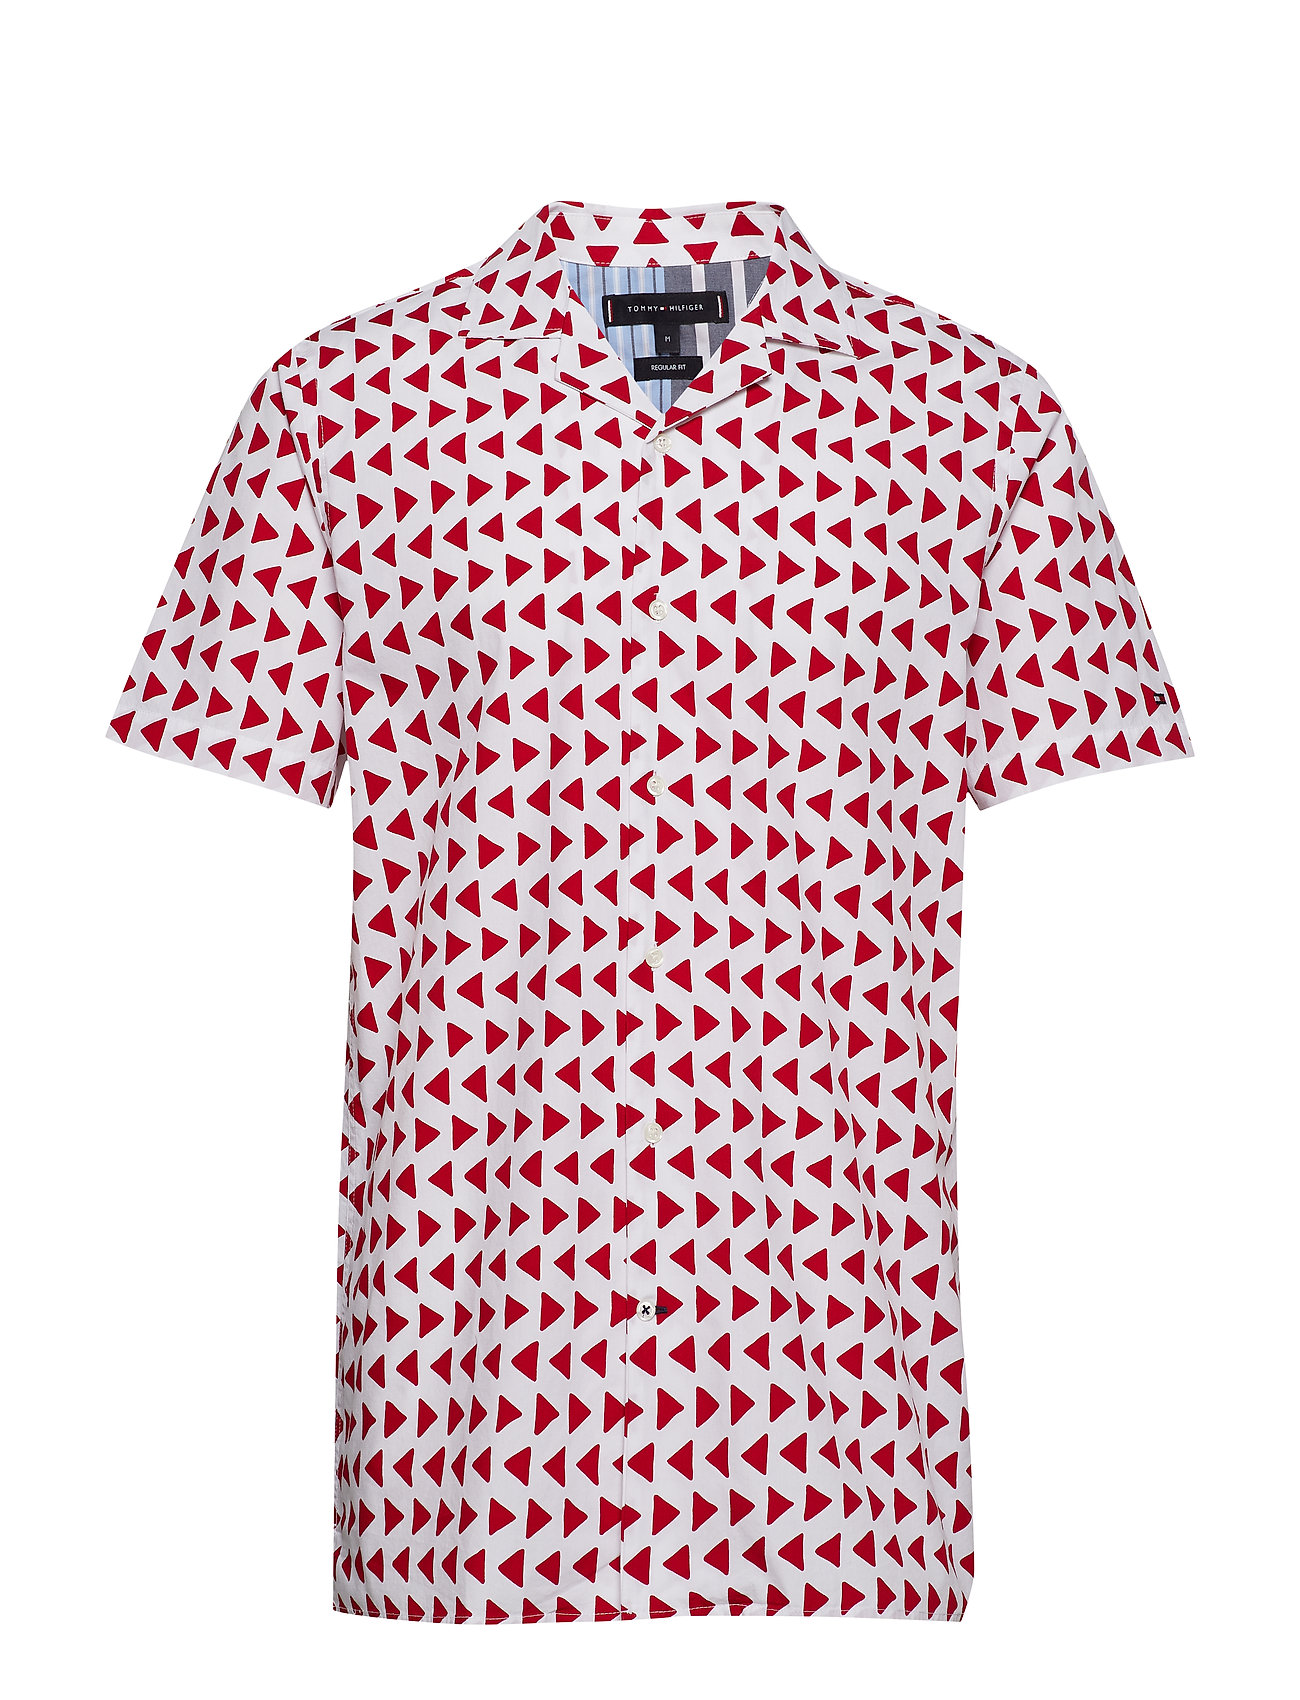 Tommy Hilfiger BOLD GEO PRINT SHIRT - BRIGHT WHITE / HAUTE RED